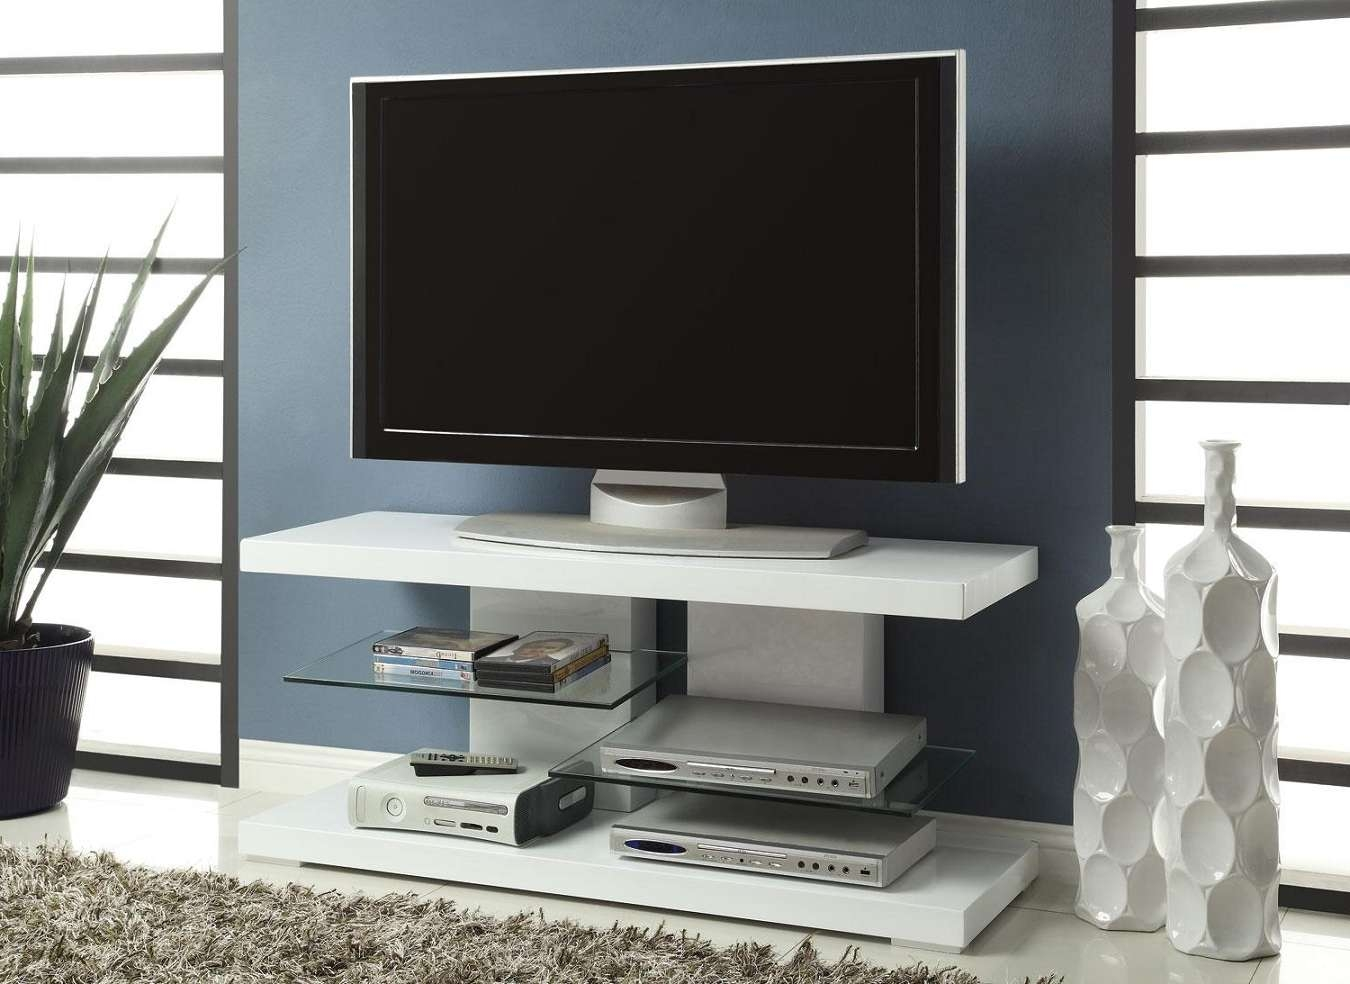 White Glossy Finished Wooden Tv Stand With Two Glass Shelves Intended For Wood And Glass Tv Stands For Flat Screens (View 12 of 20)